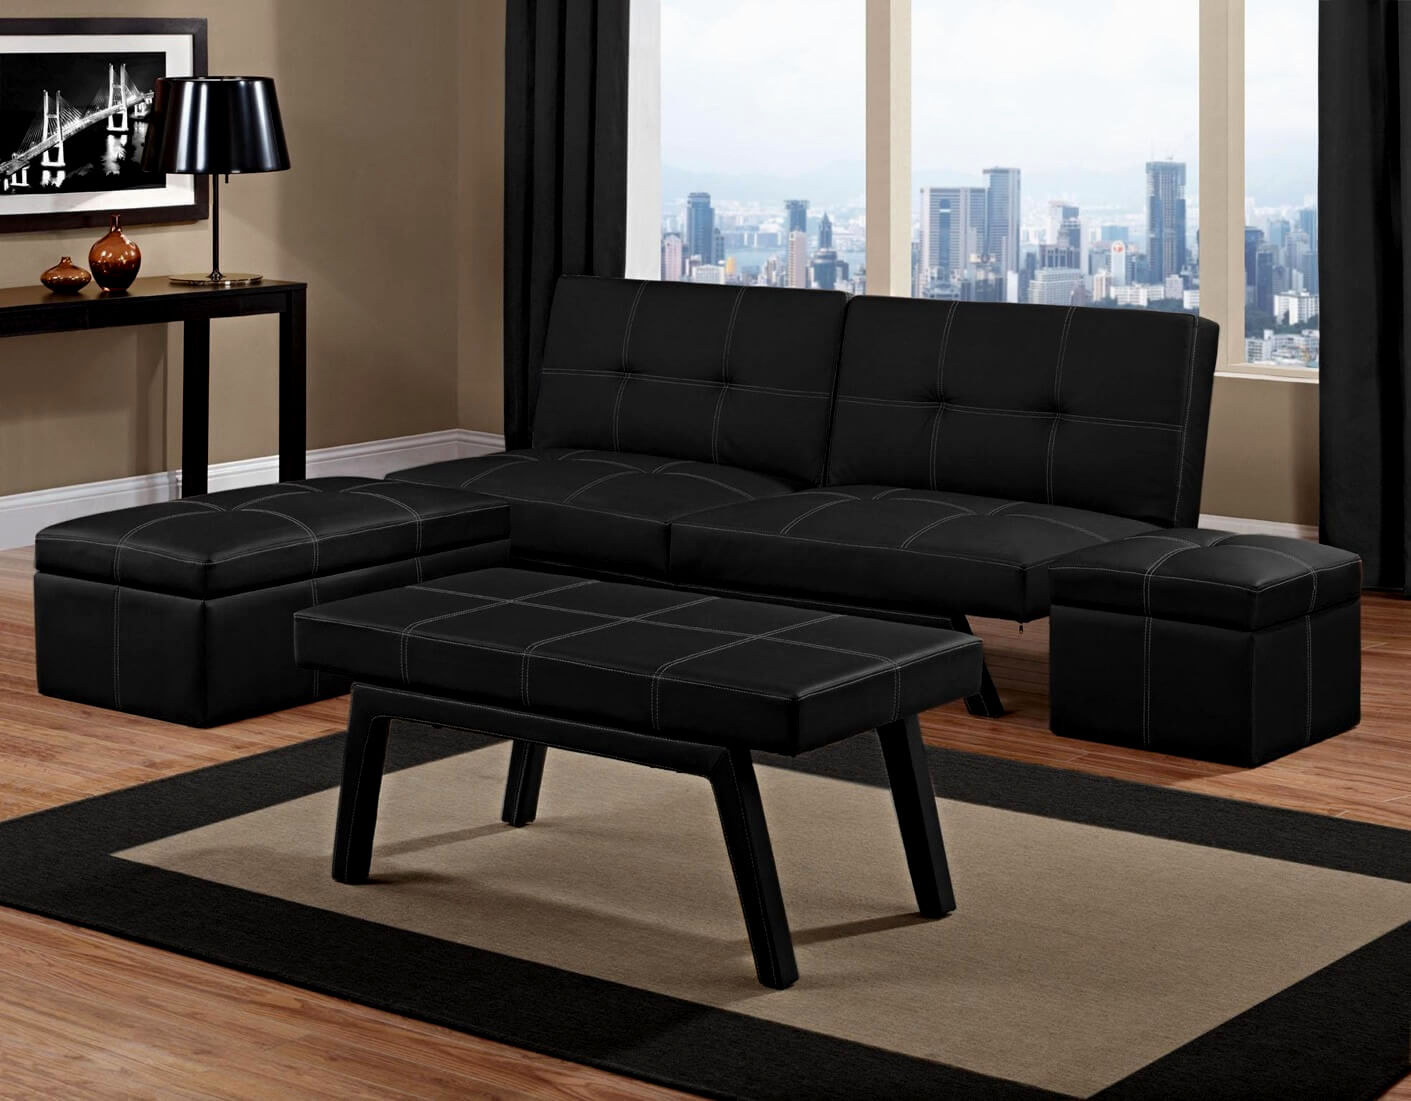 top kebo futon sofa bed design-Stunning Kebo Futon sofa Bed Image